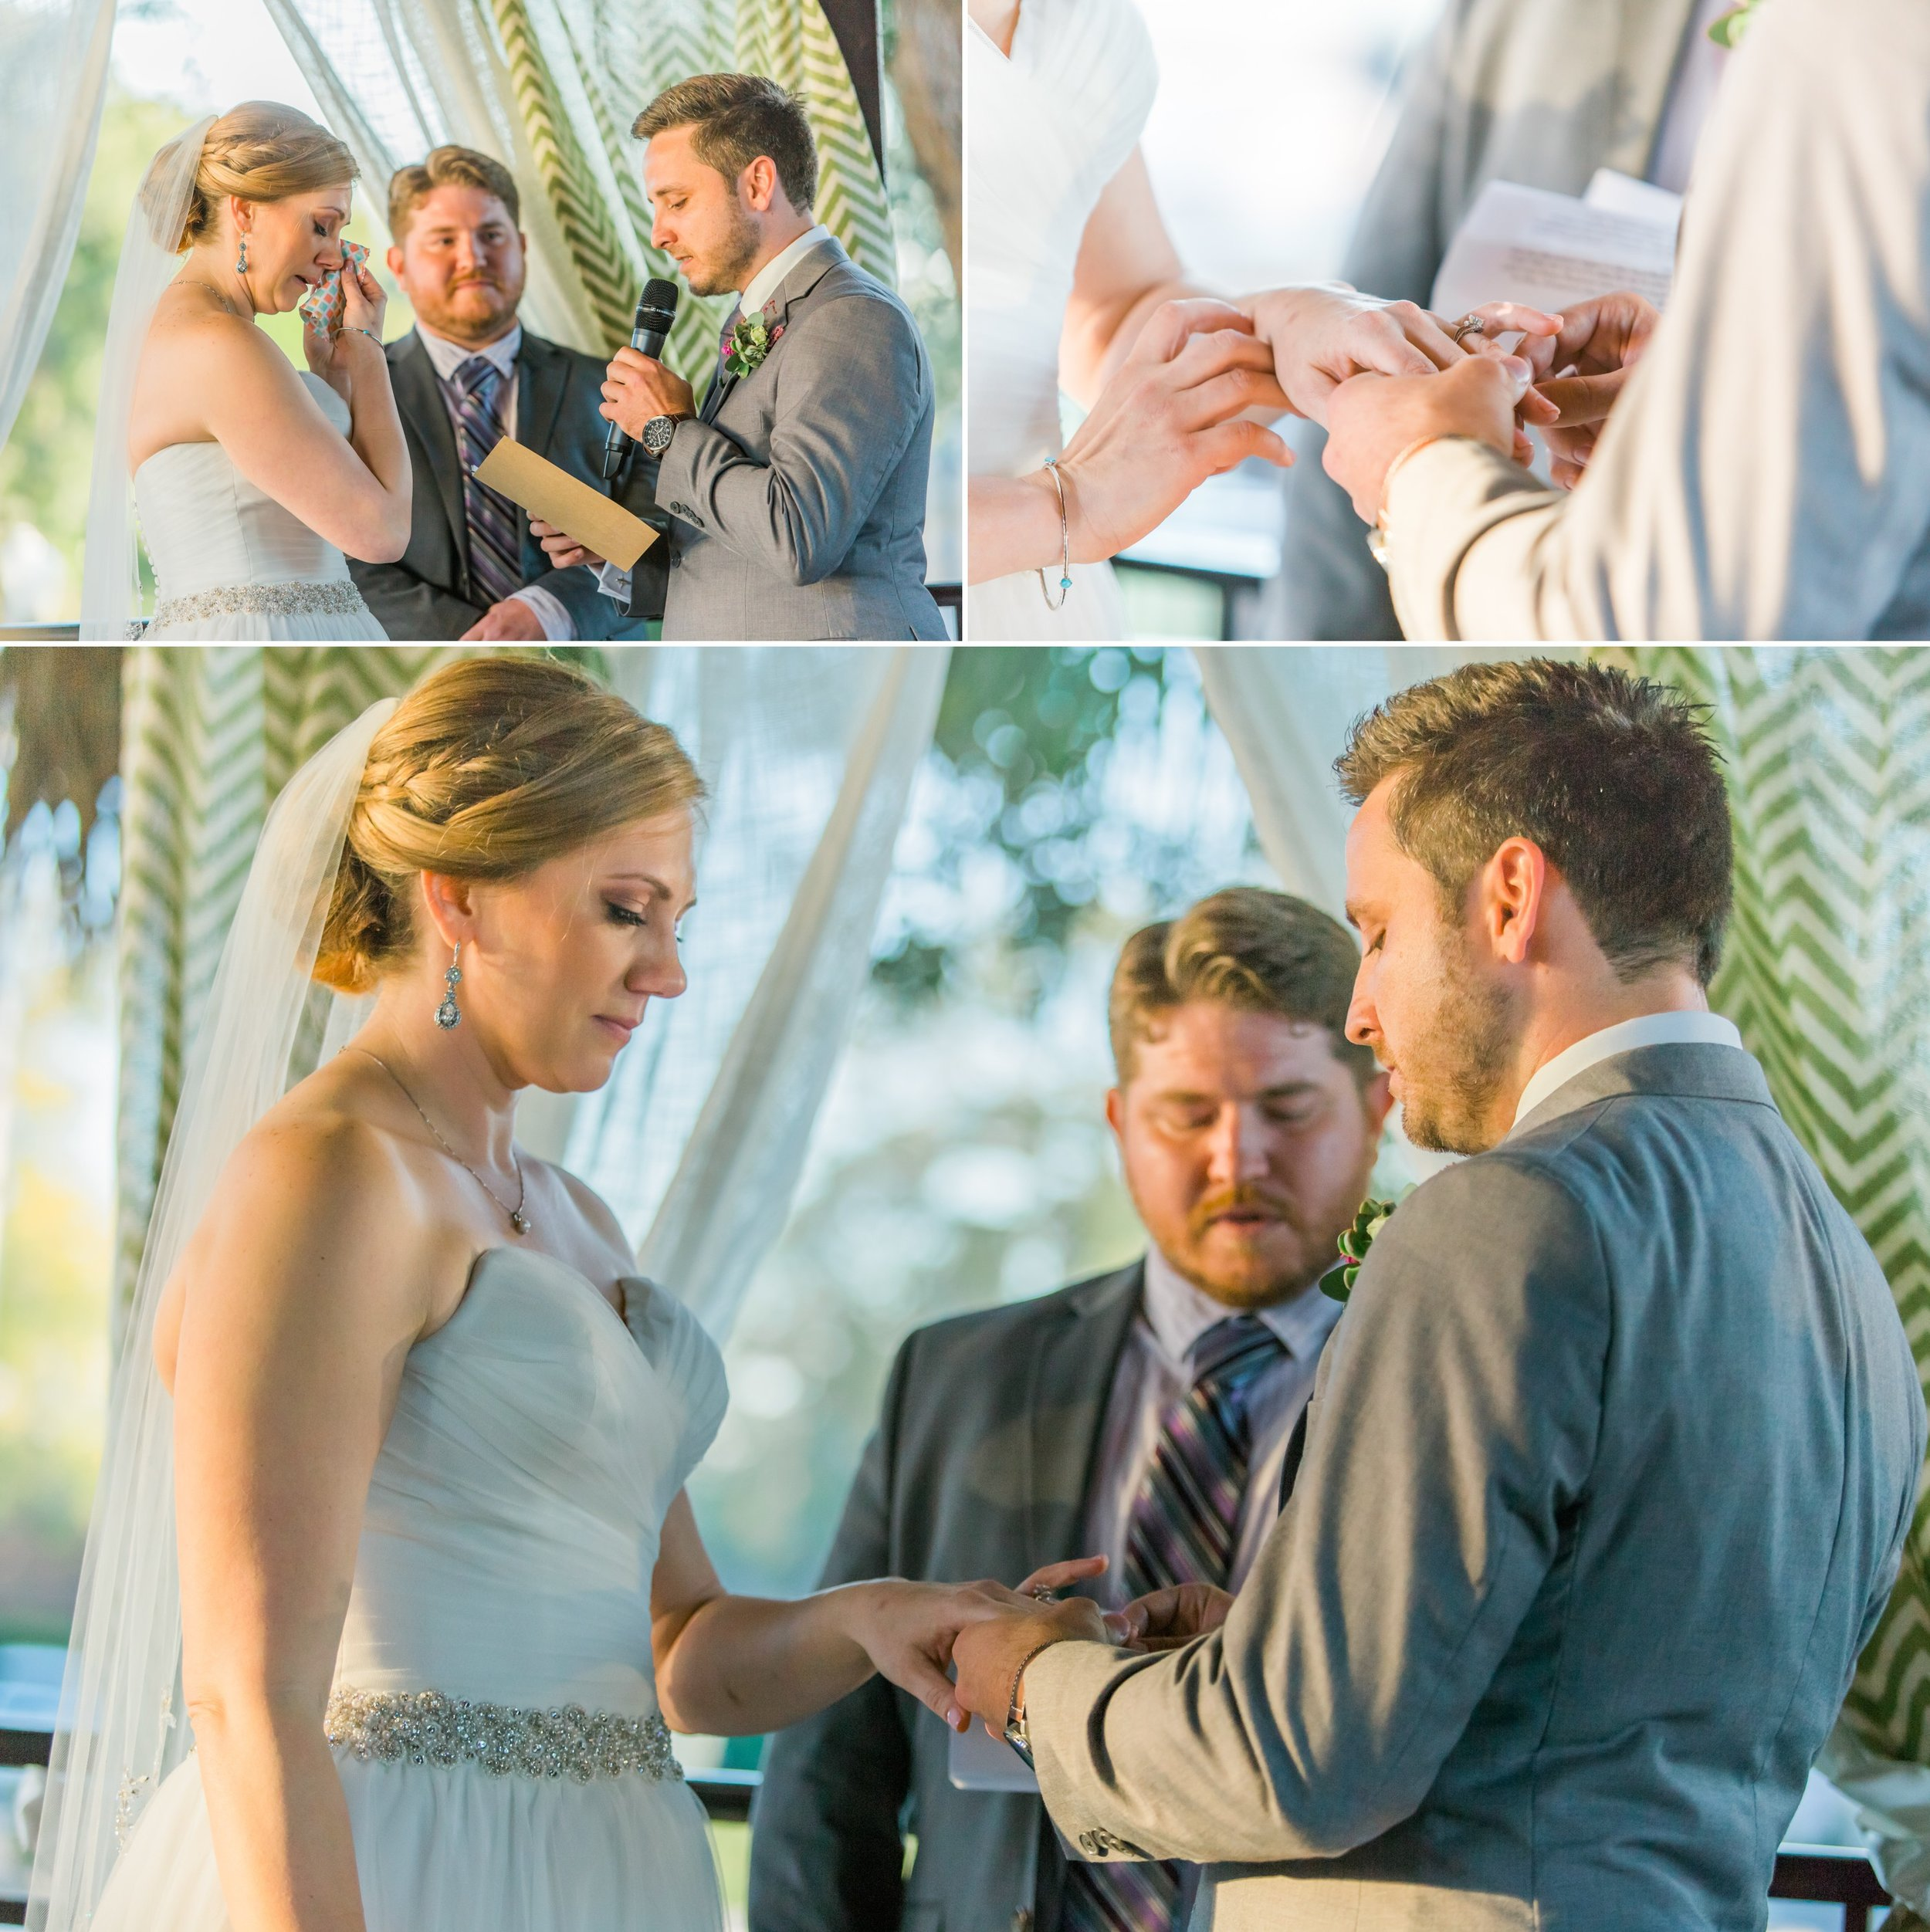 Rustic Chic wedding ceremony ring exchange at the Winter Park Farmer's Market